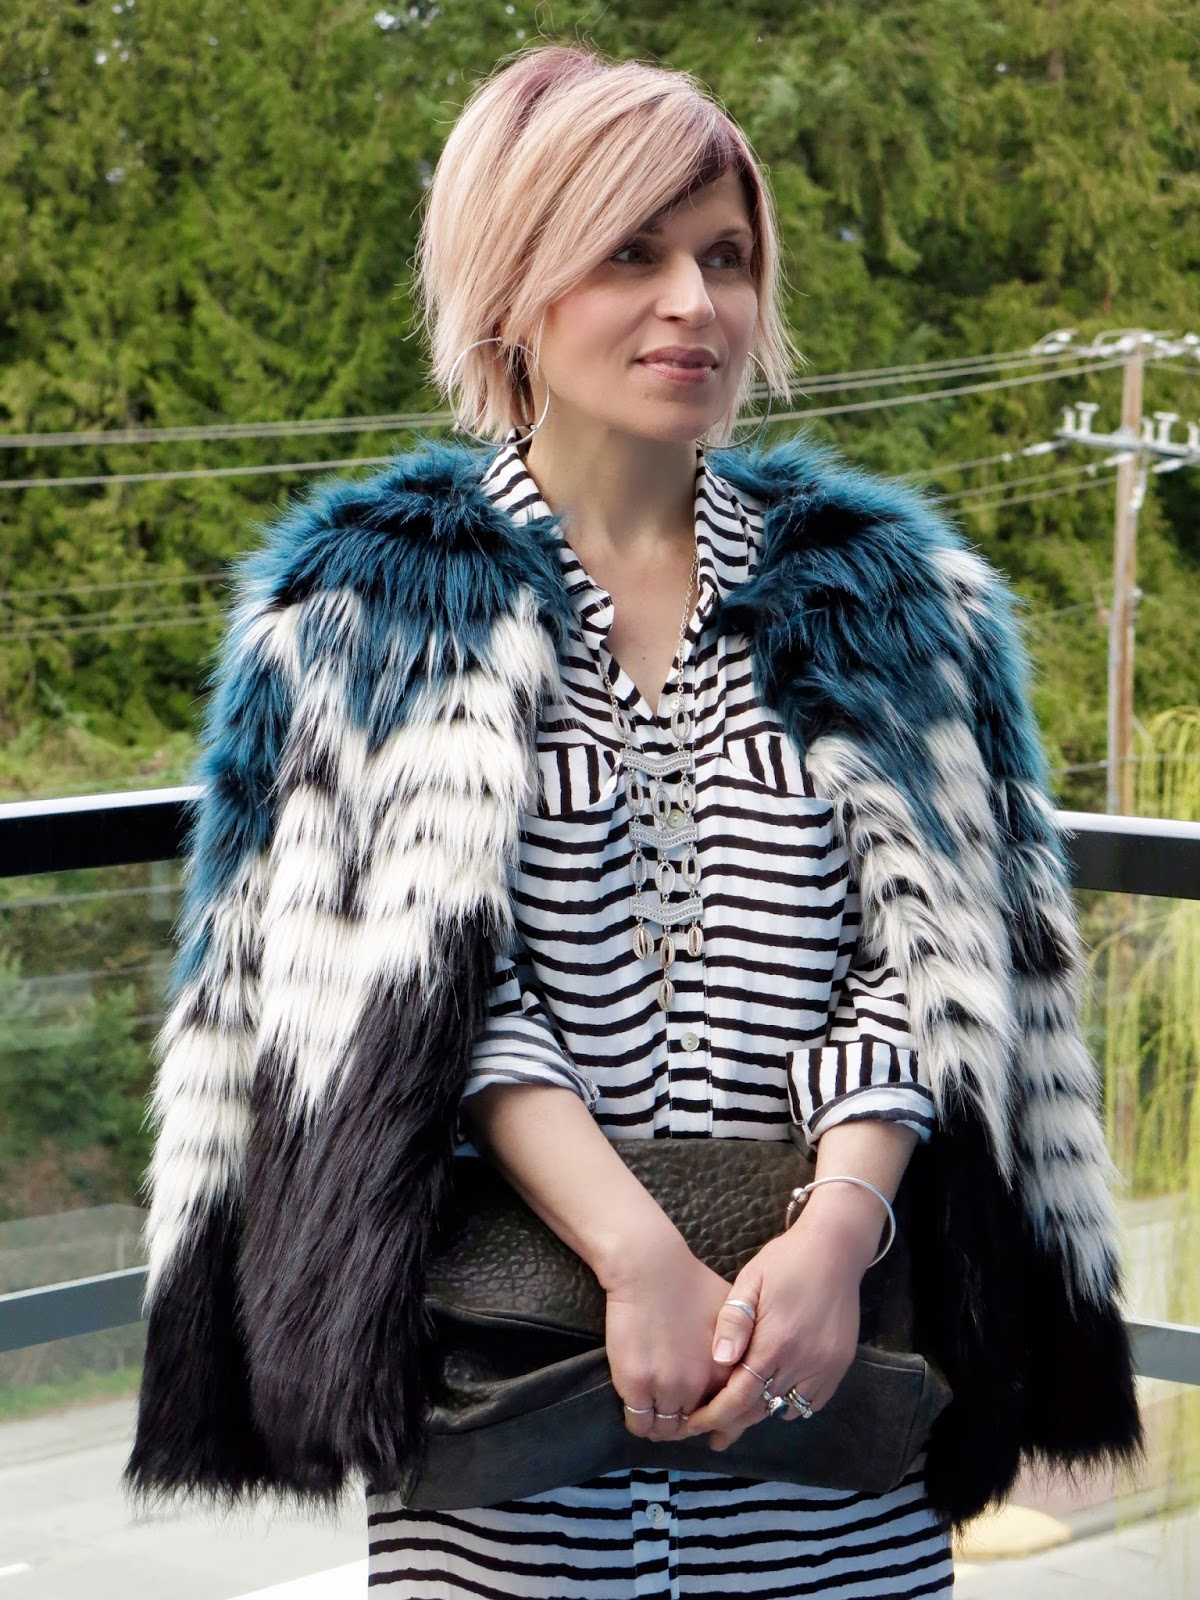 striped shirtdress and colour-blocked, faux-fur jacket